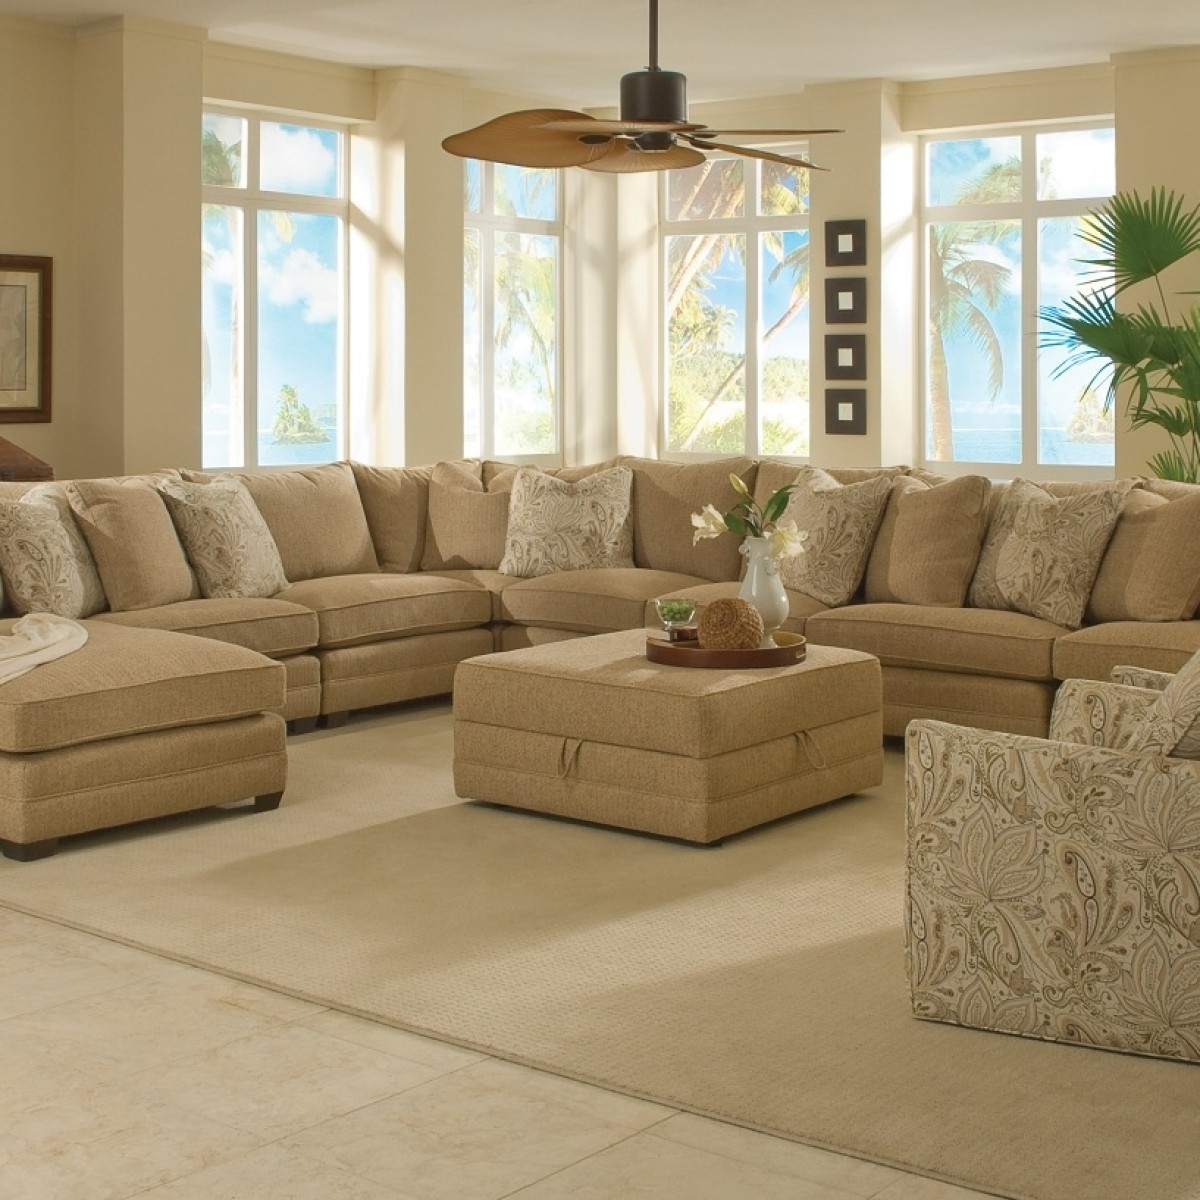 Preferred Sofa Sectionals With Chaise With Regard To Ethan Allen Sectional Sofas Double Chaise Sectional U Shaped (View 11 of 15)